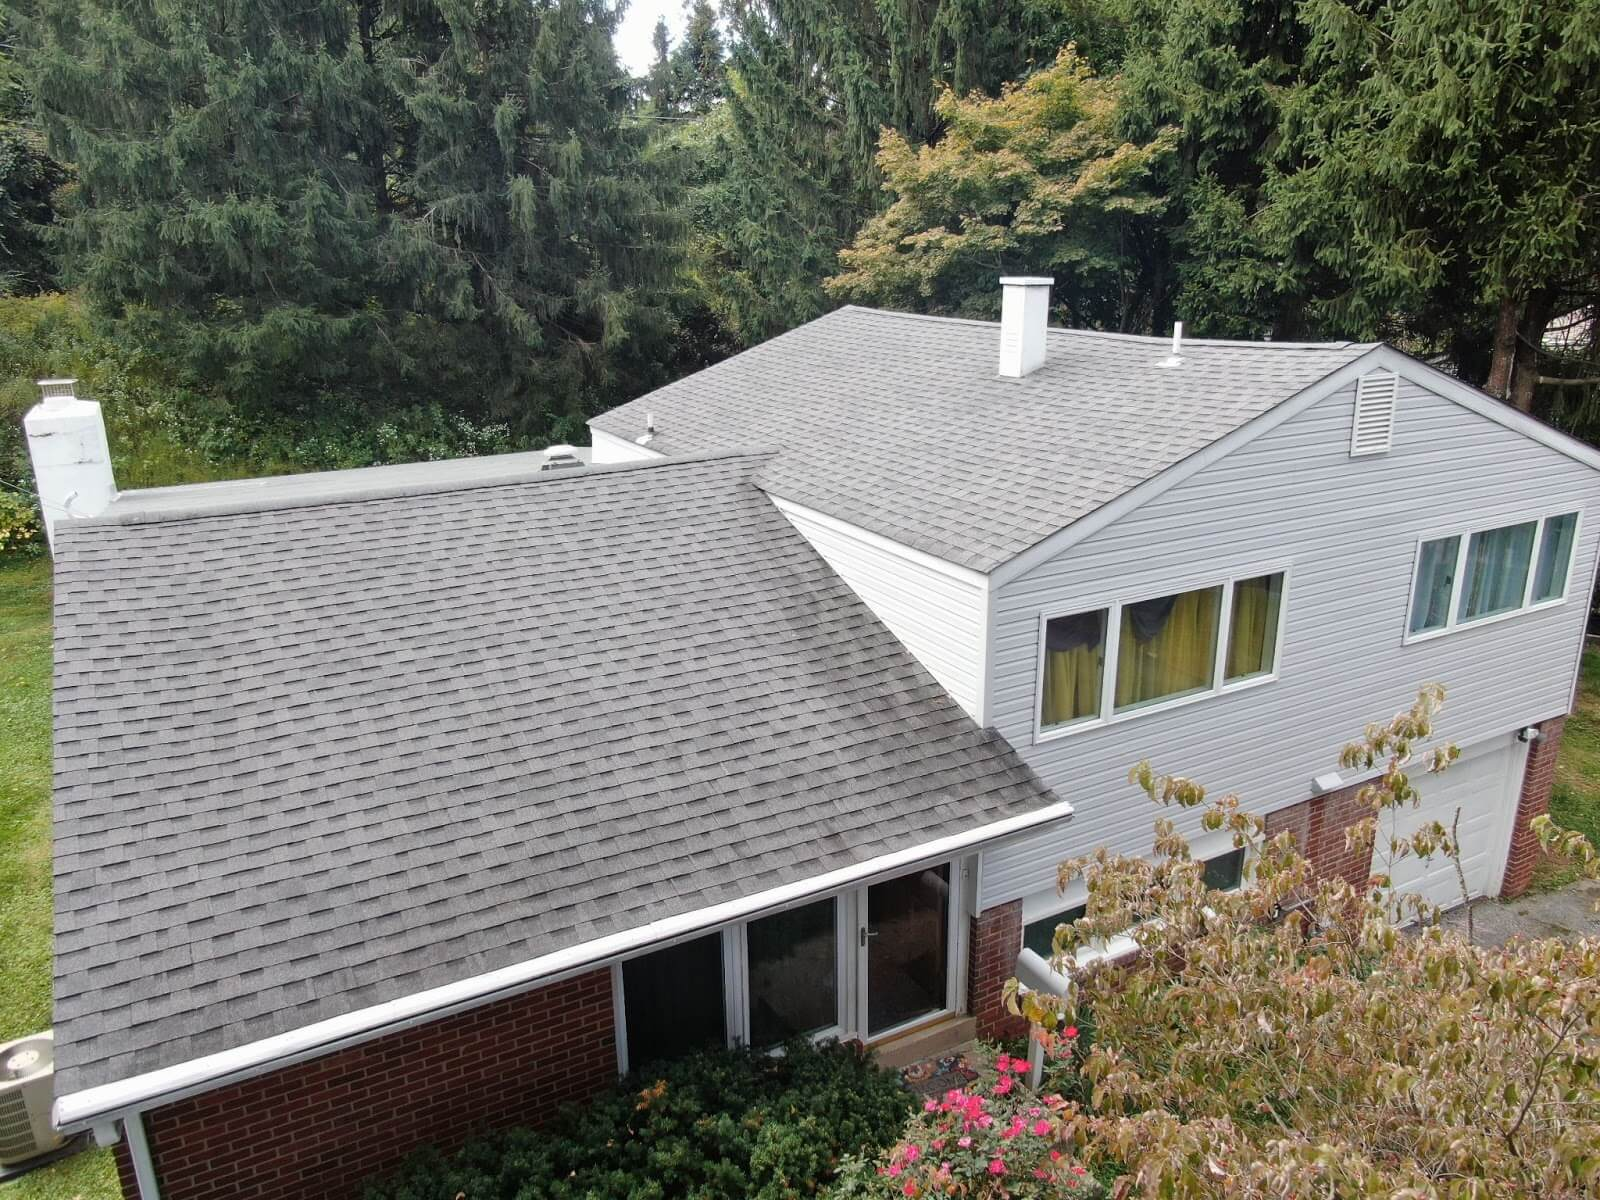 Popular Roofing Materials and Their Hail Resistance